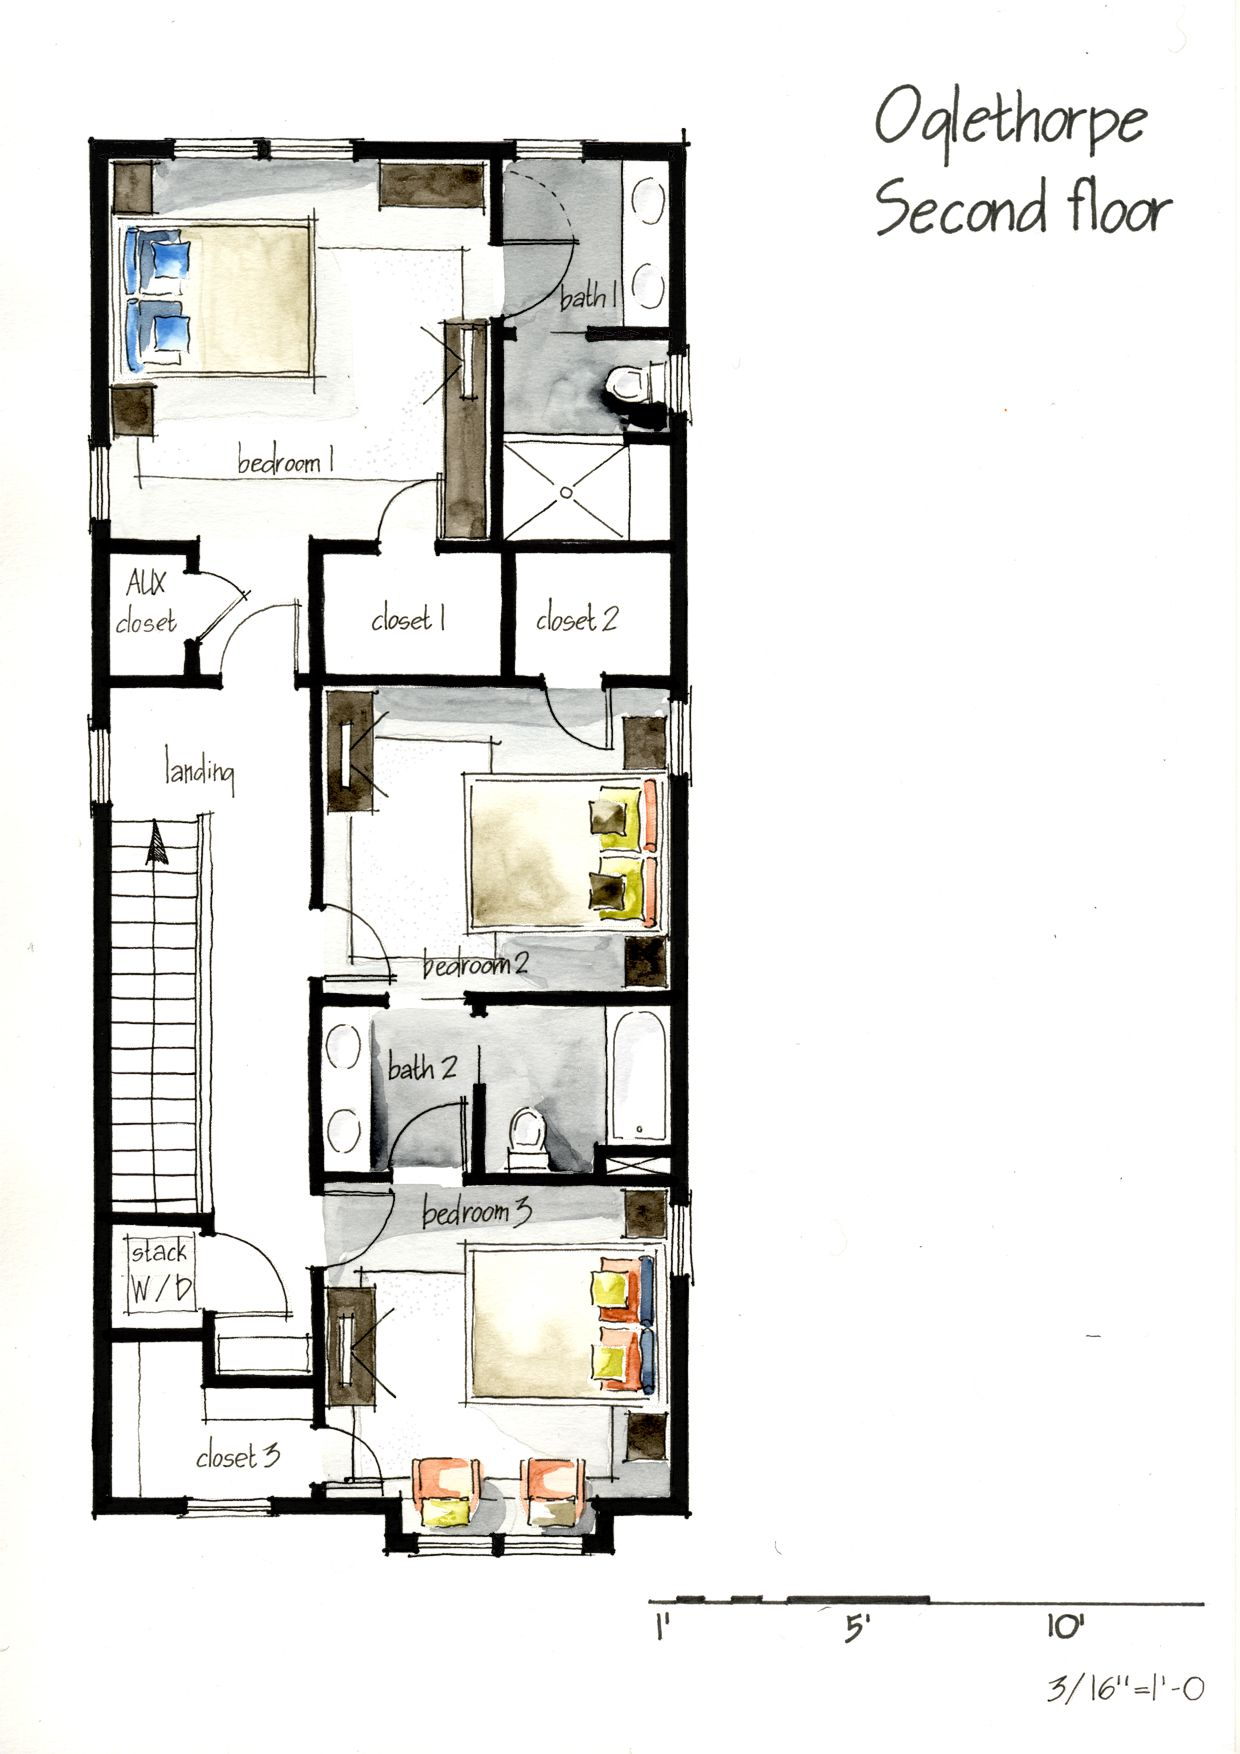 Drawing House Floor Plans: Floor Plans, House Plans